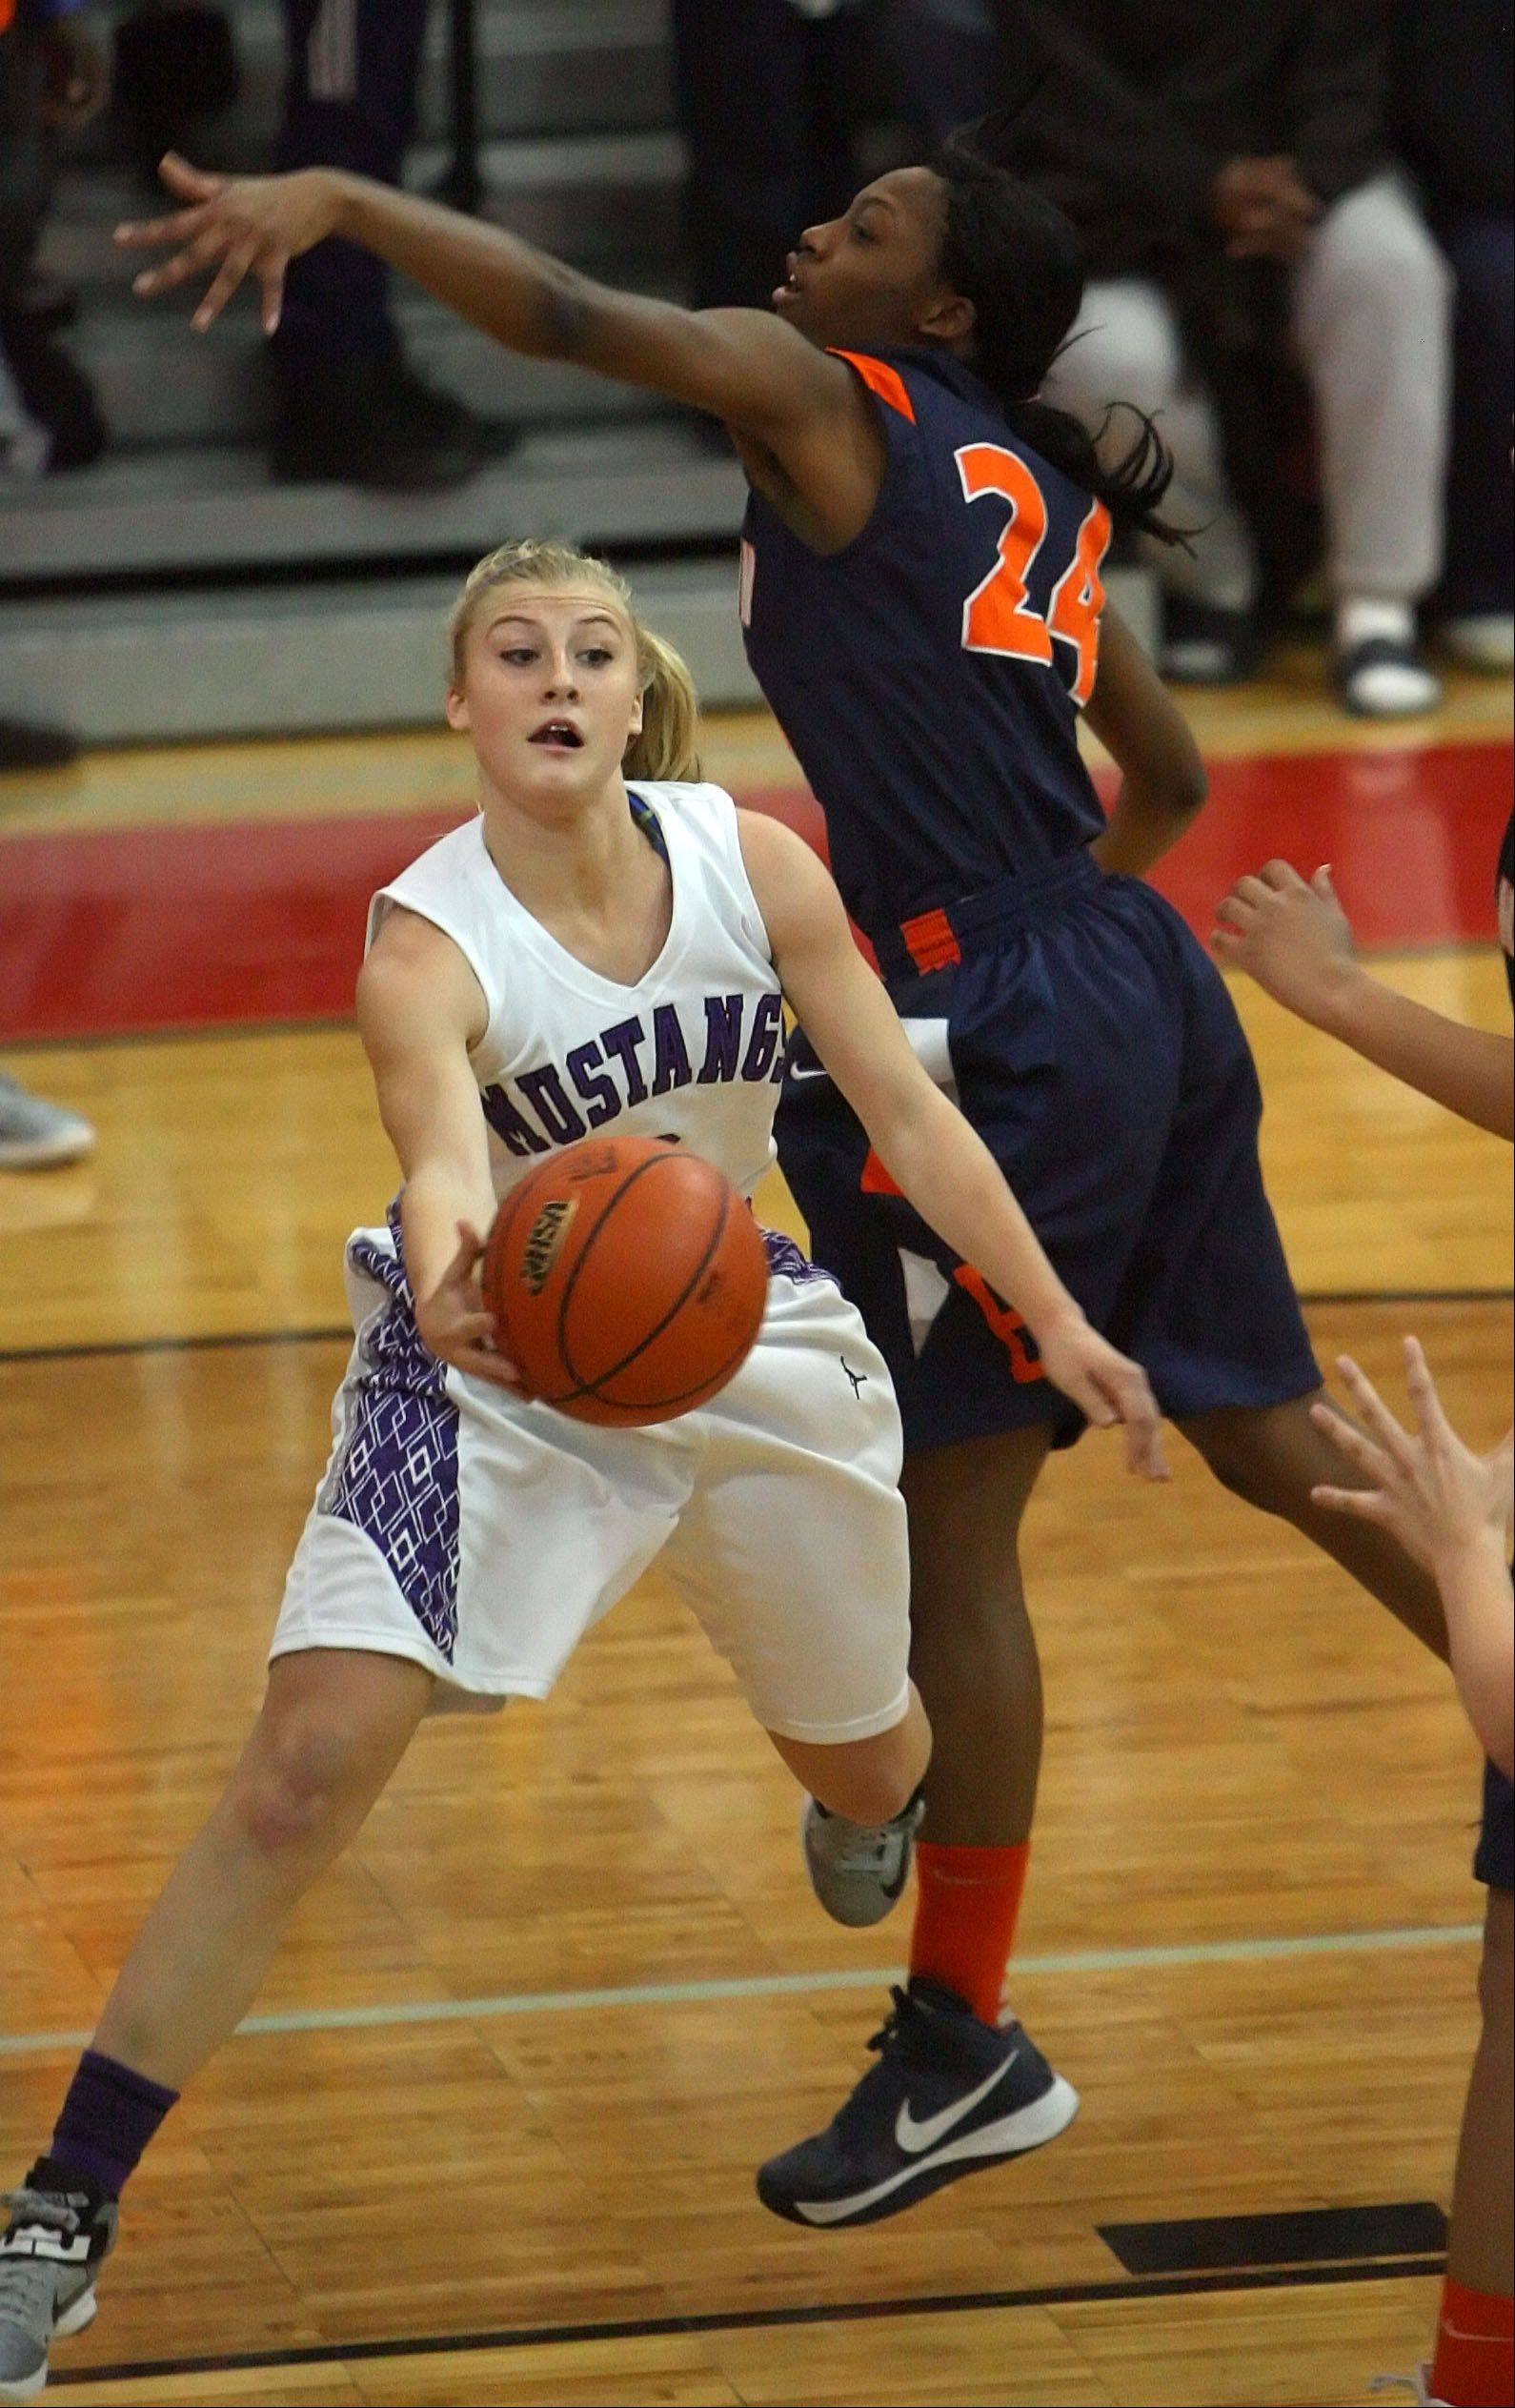 Rolling Meadows' Jackie Kemph drives against Evanston's Sierra Clayborn in Class 4A Niles West supersectional action in Skokie.